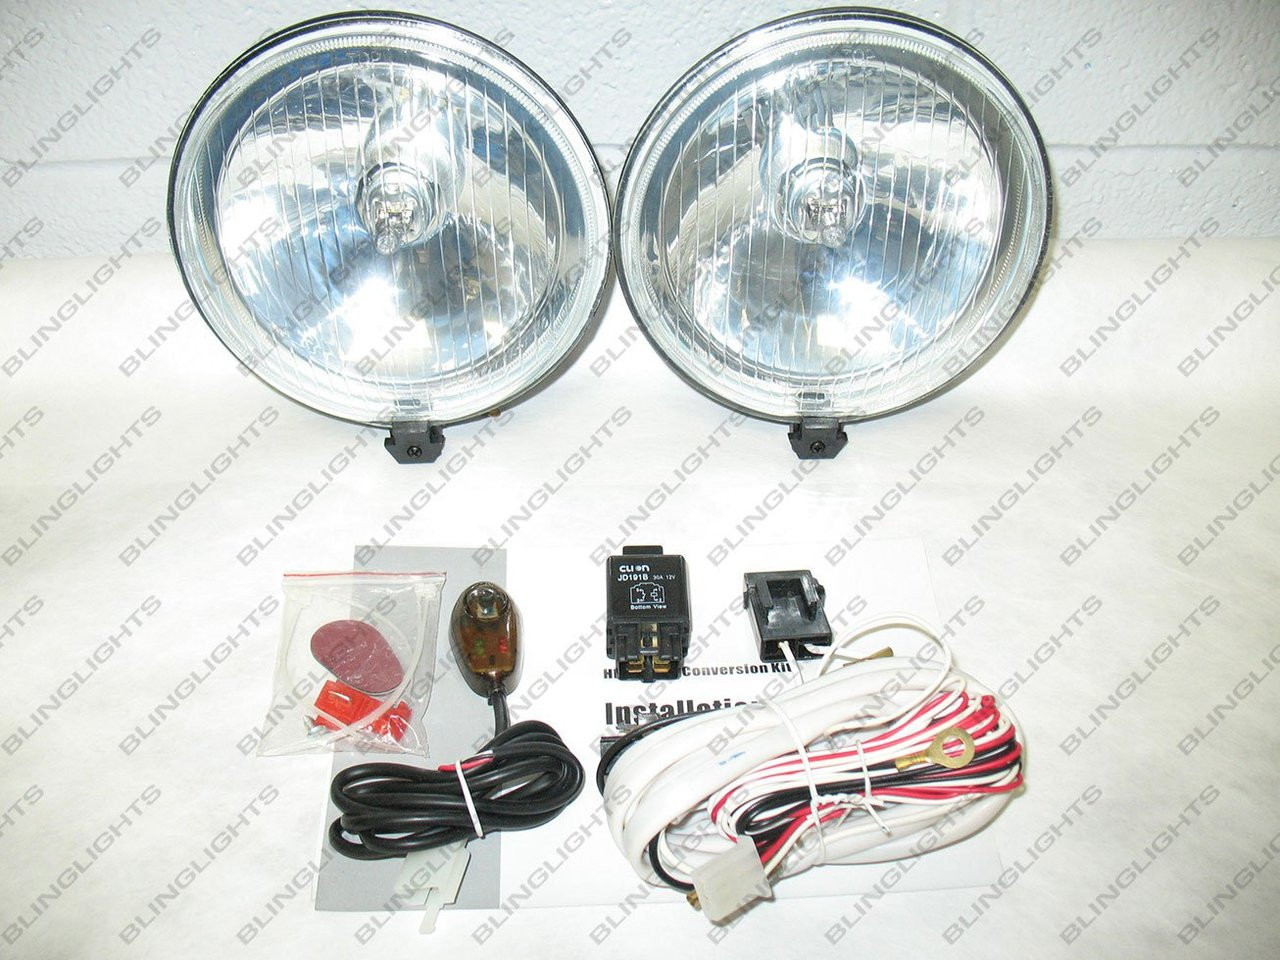 2003 2009 hummer h2 bumper xenon fog lamps driving lights kit [ 1280 x 960 Pixel ]